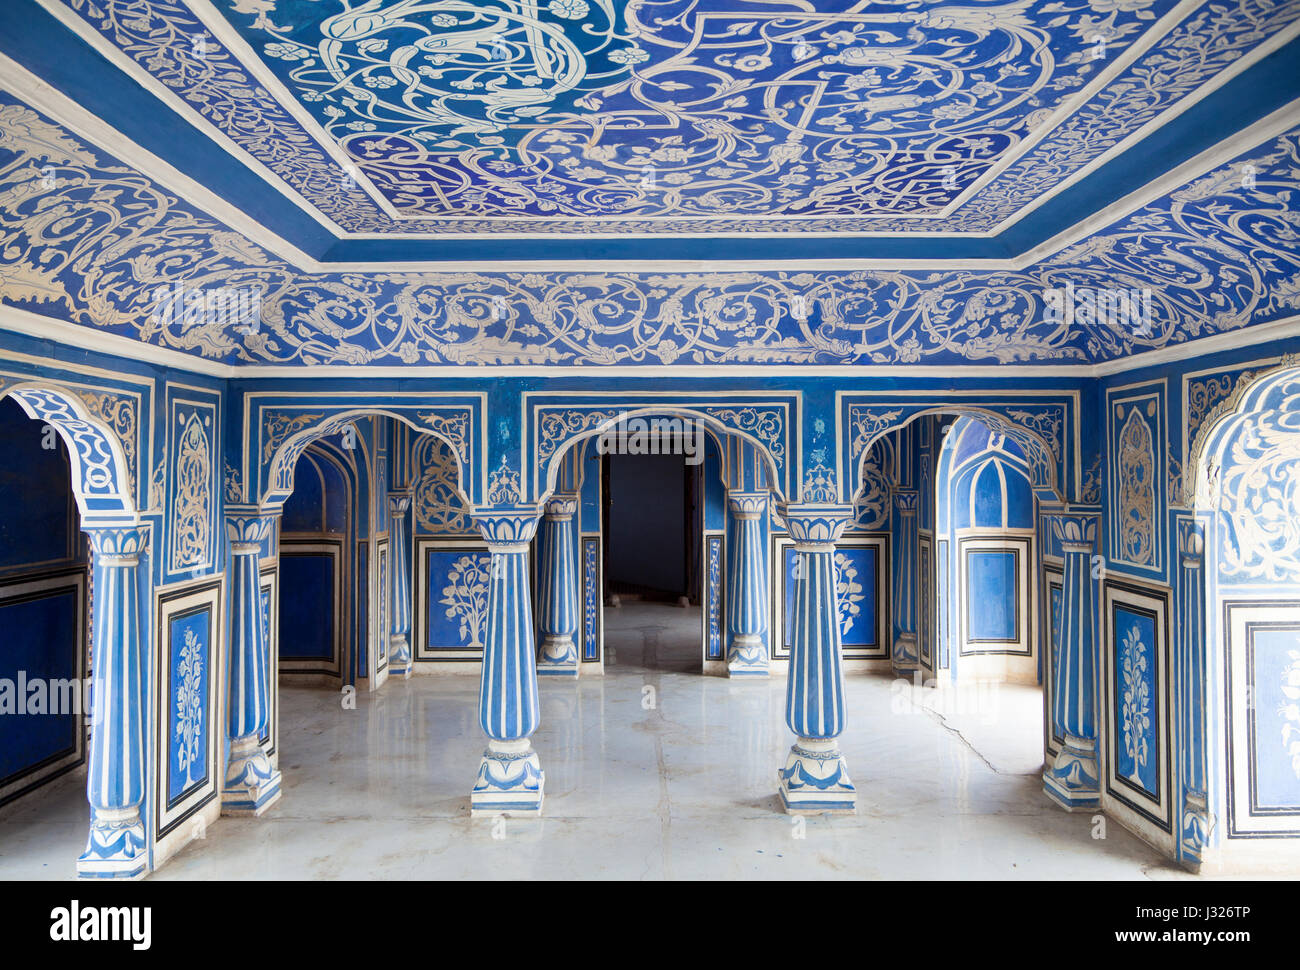 "The ""Sukh Nivas"" (Hall of Rest) on the 2nd floor of the Chandra Mahal at the City Palace of Jaipur in Rajasthan, Stock Photo"